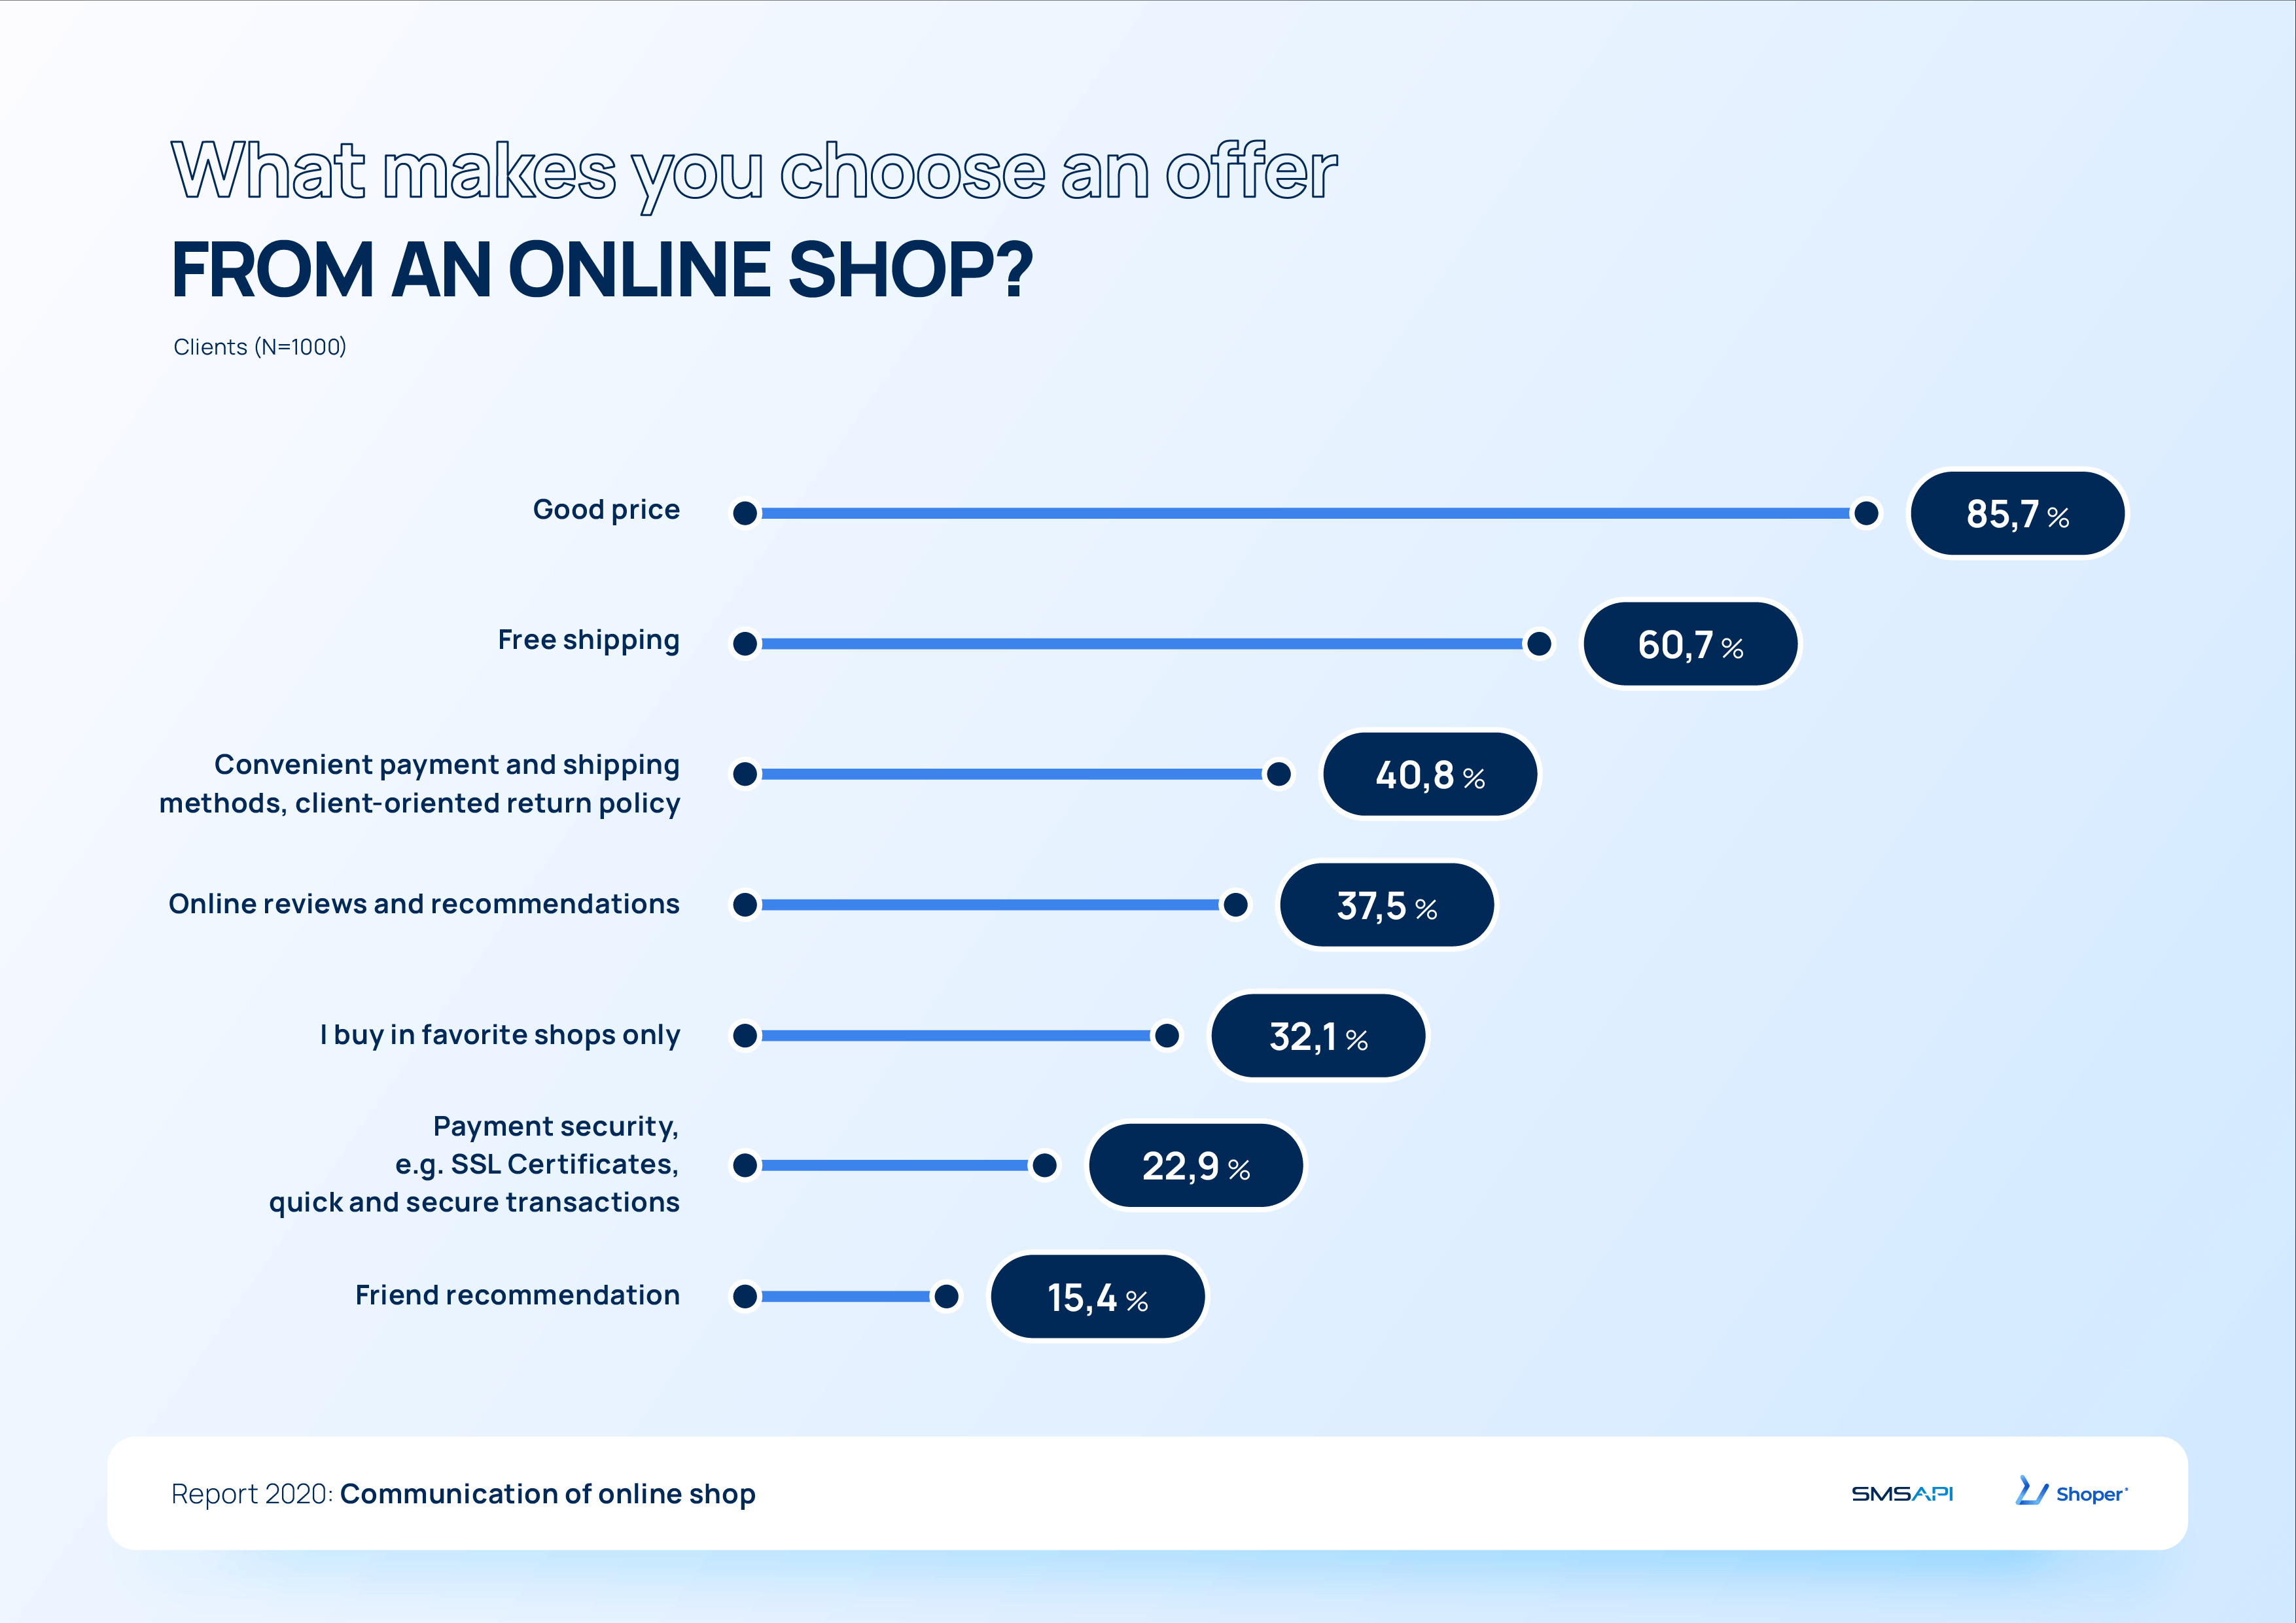 What makes you choose an offer from an online shop? 2020 e-commerce report